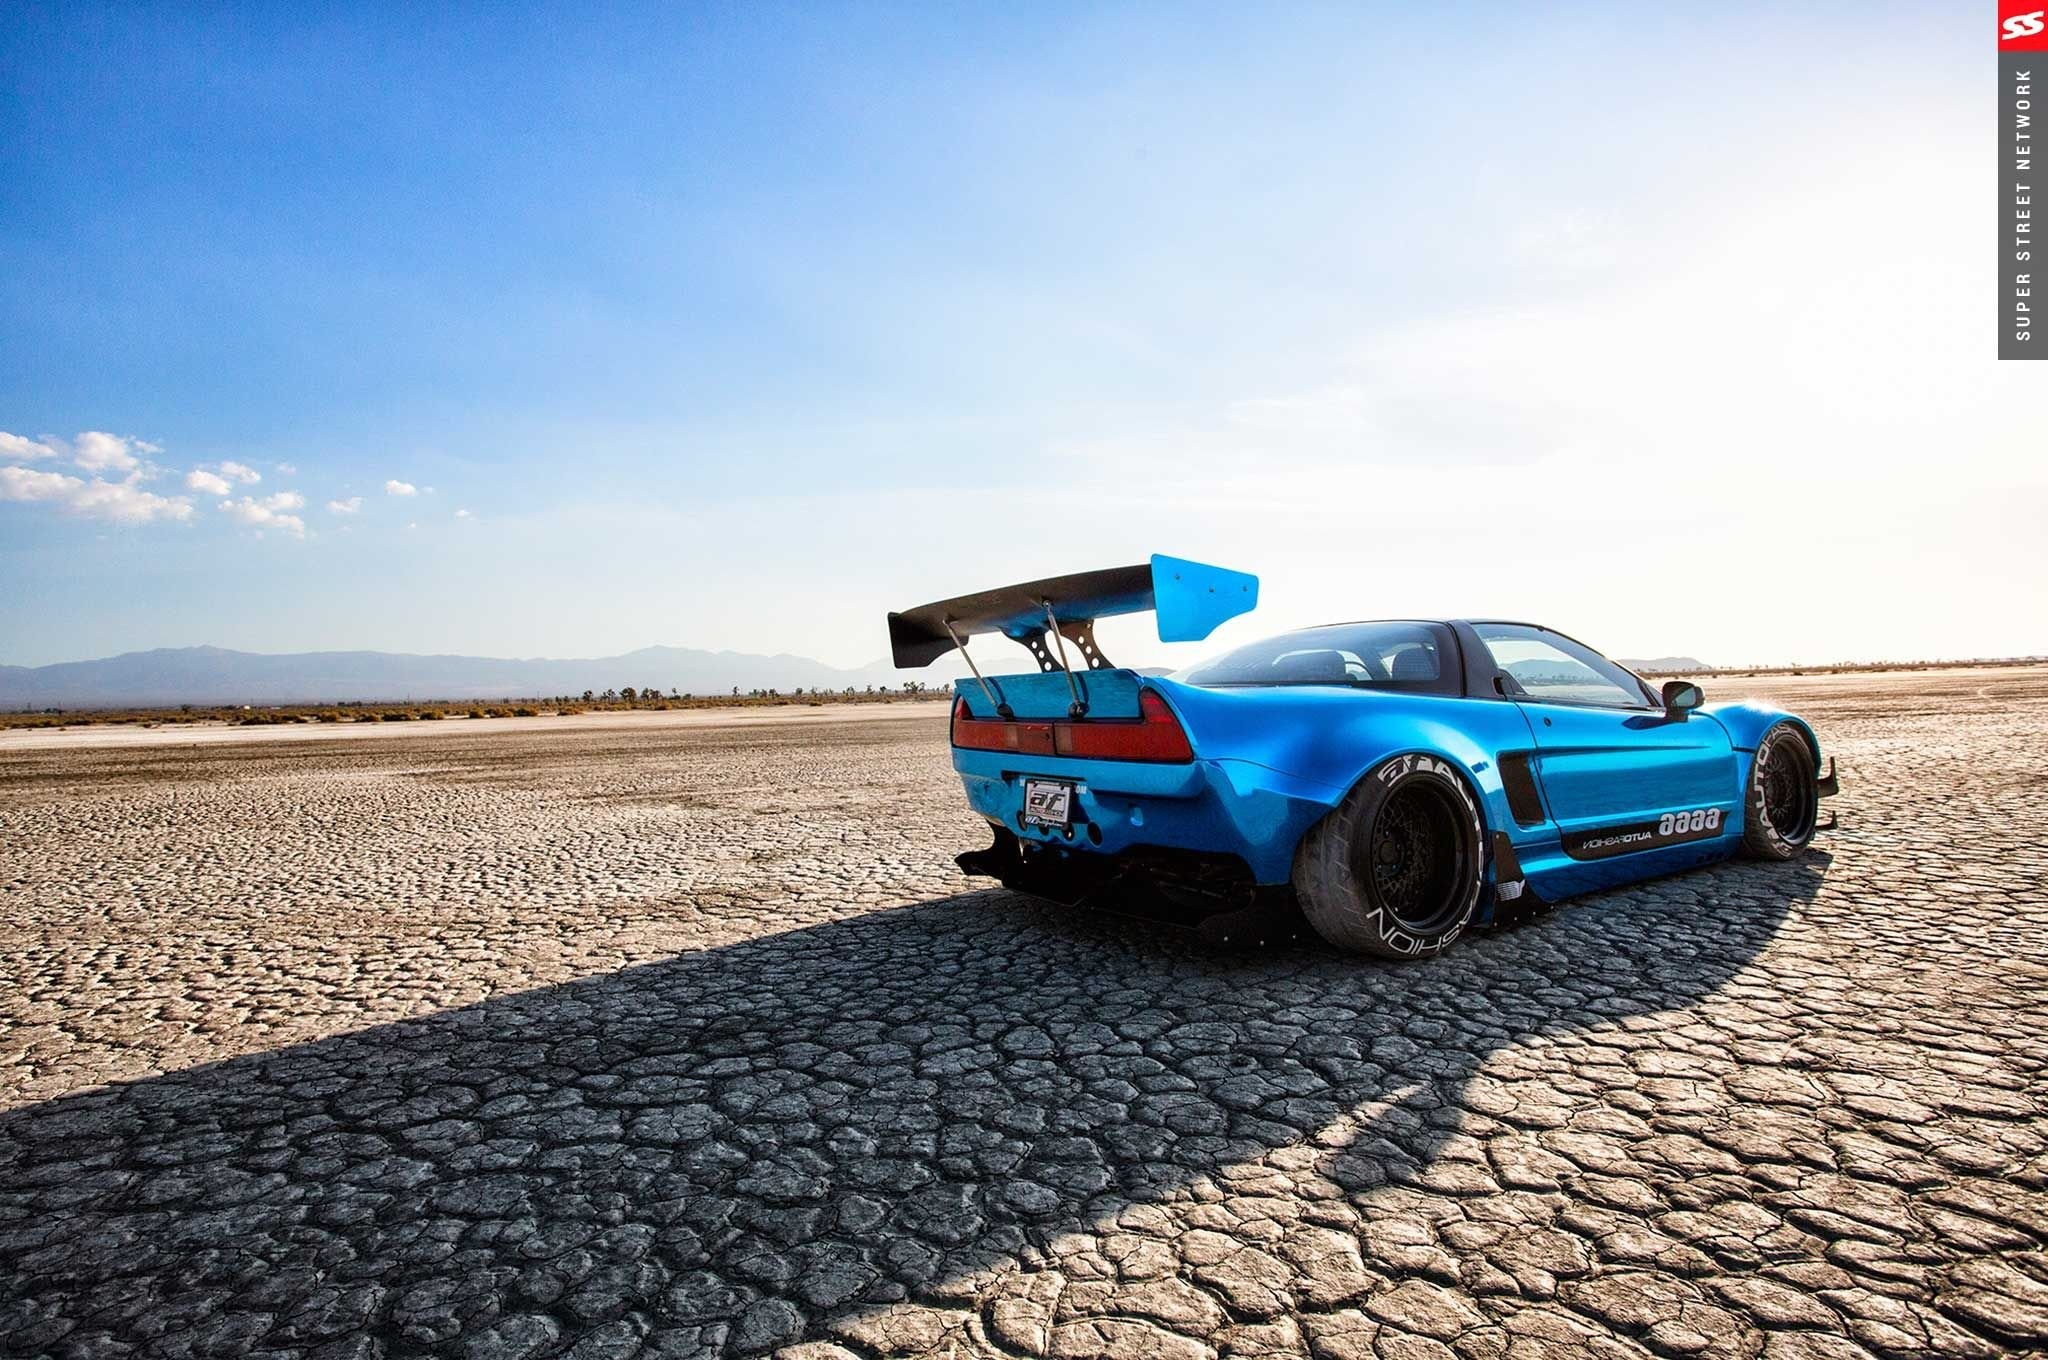 1992 acura nsx rocket bunny cars coupe modified blue wallpaper |  | 855630 | WallpaperUP